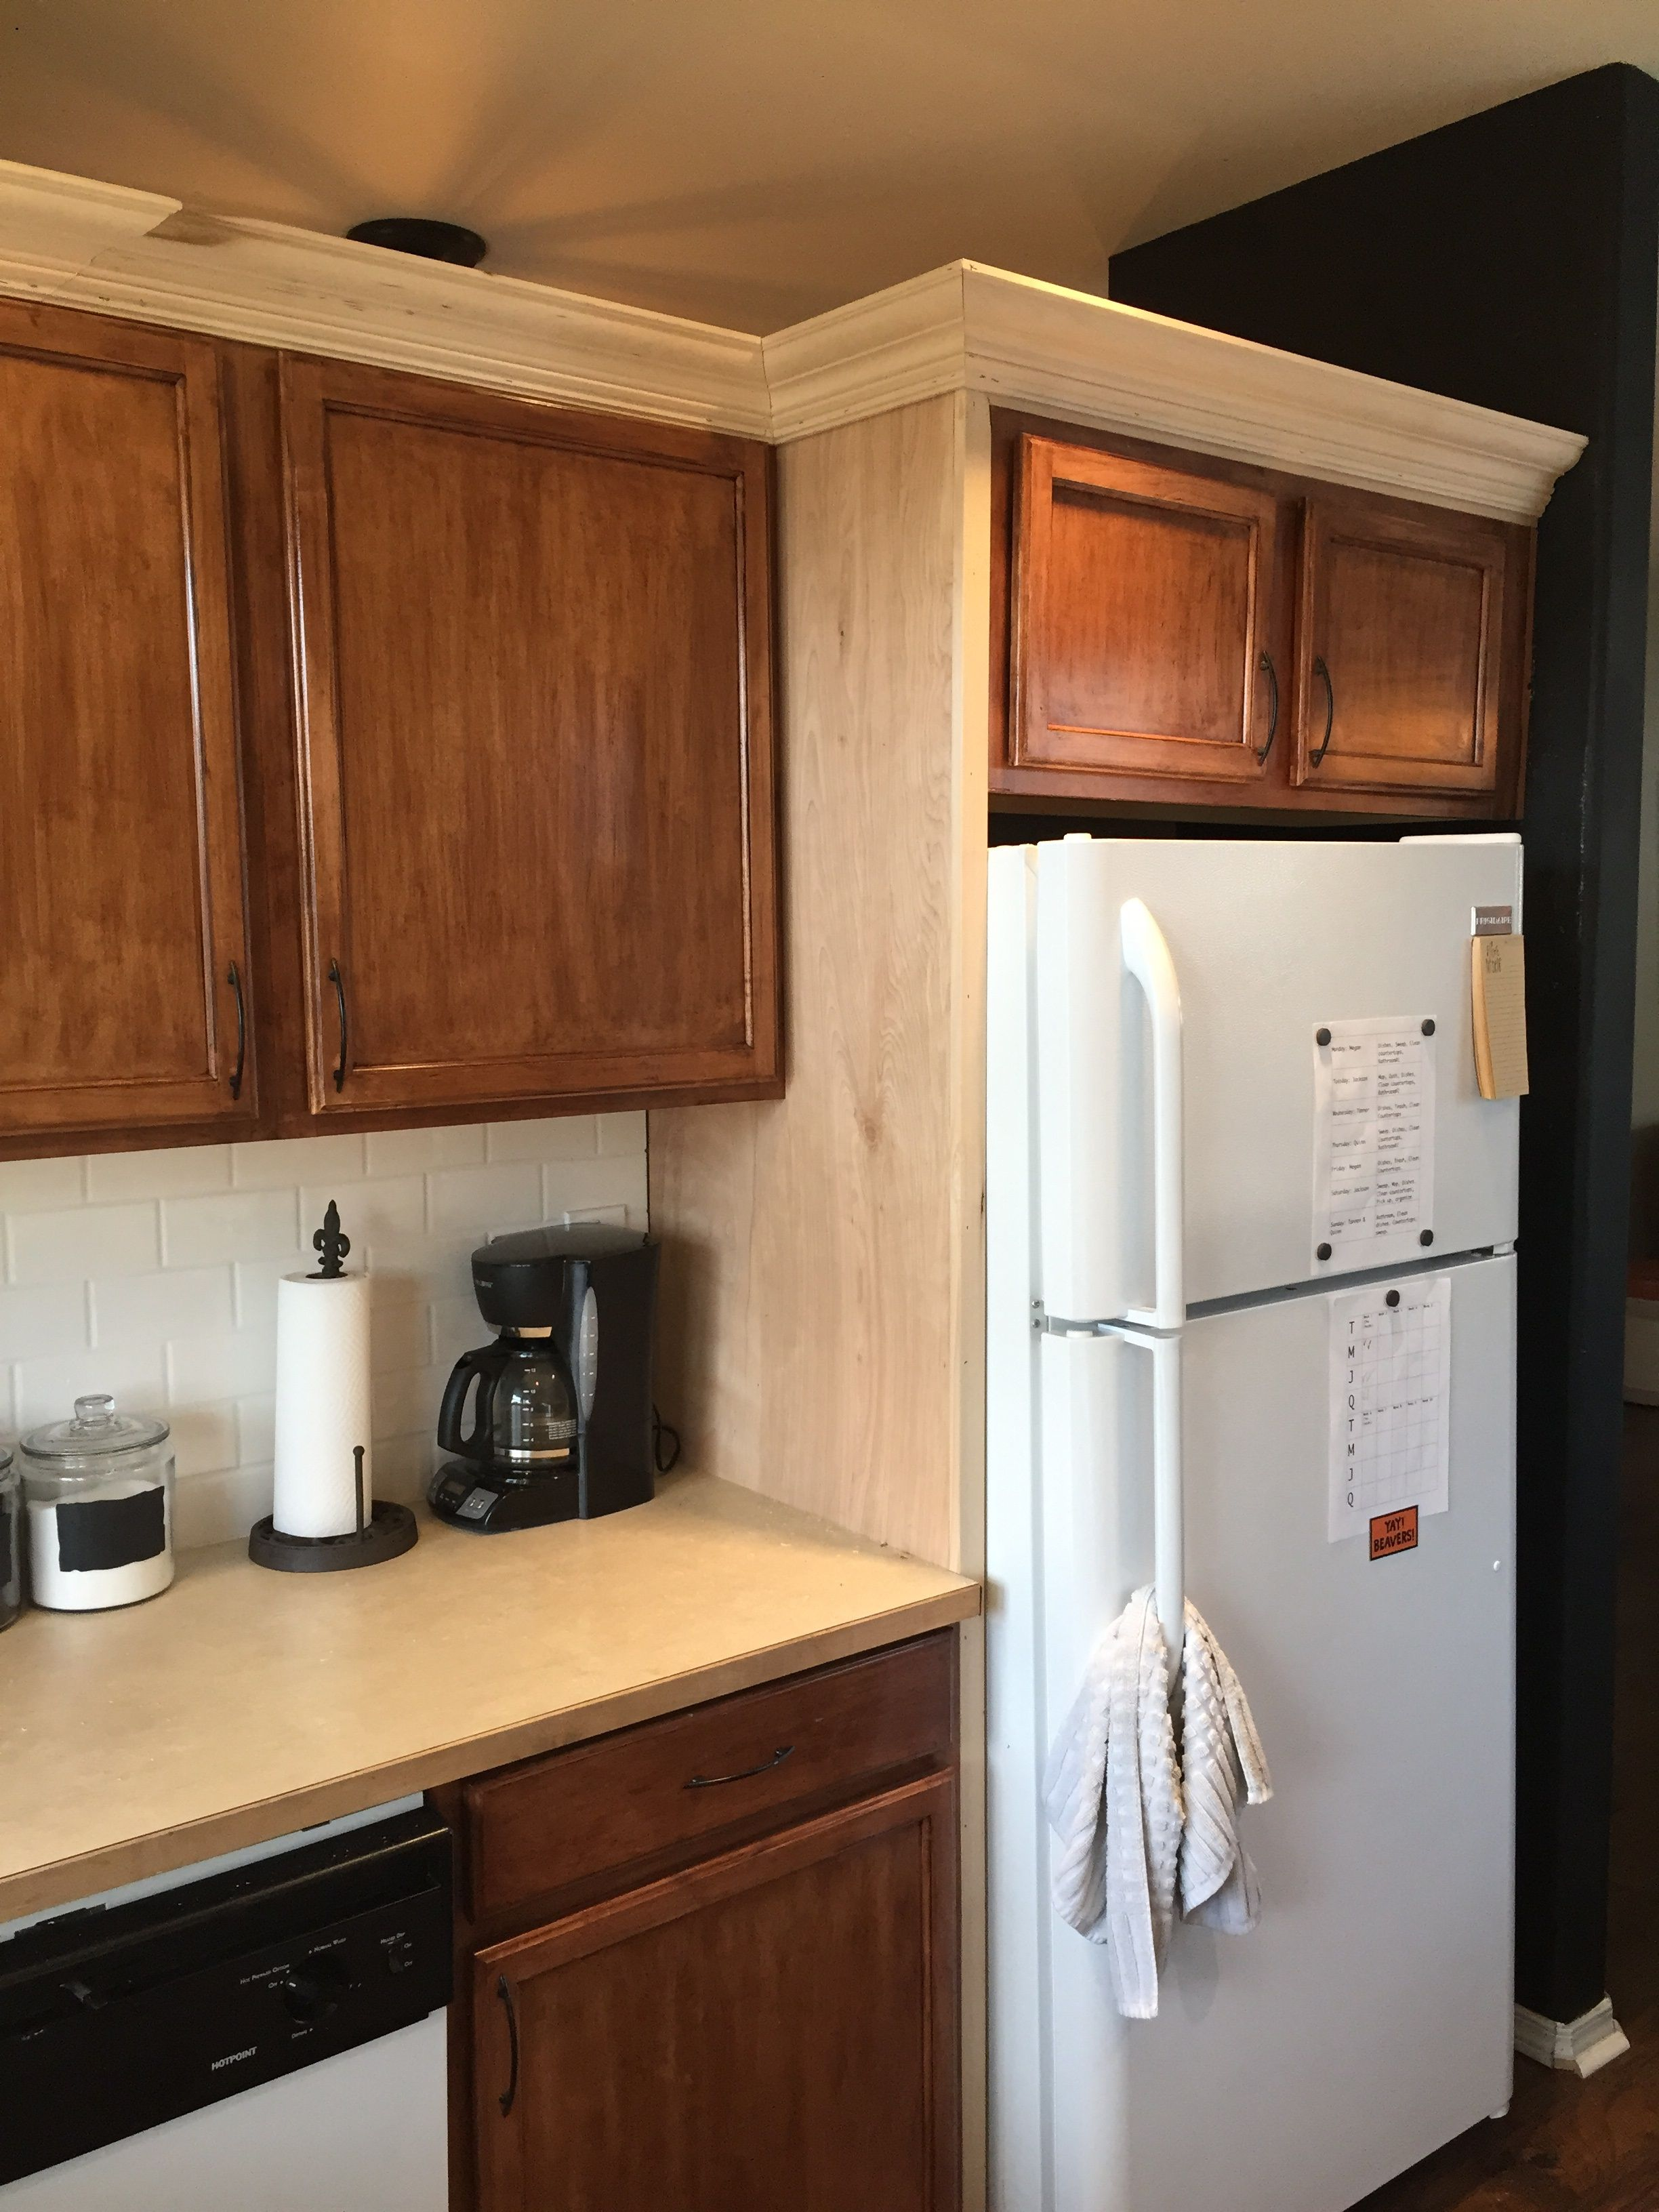 Crown molding and fridge side panel addition to dress up the kitchen ...